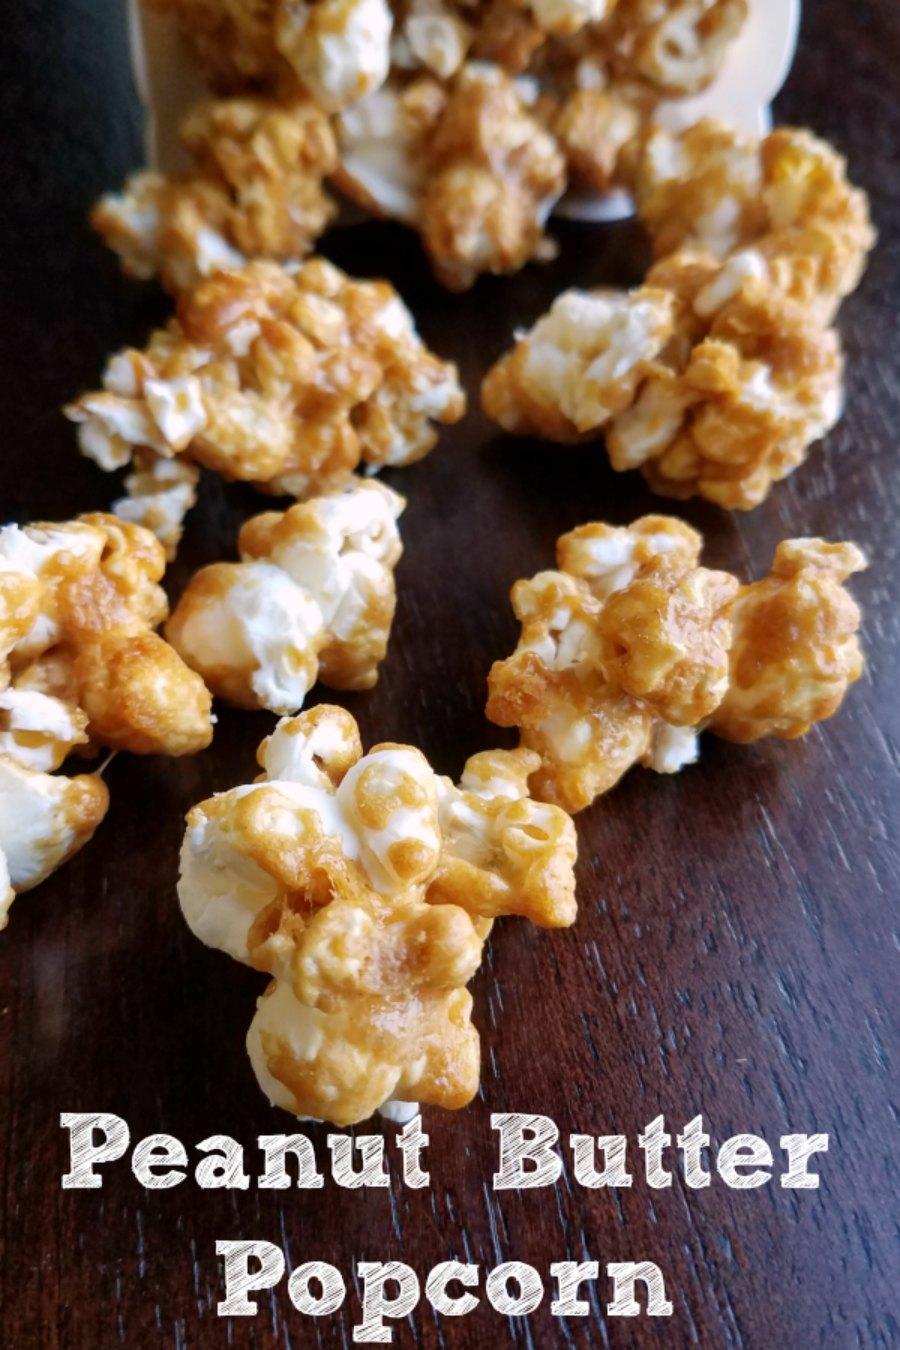 Crunchy peanut butter popcorn with that perfect sweet and salty balance. This popcorn is so fun to snack on!